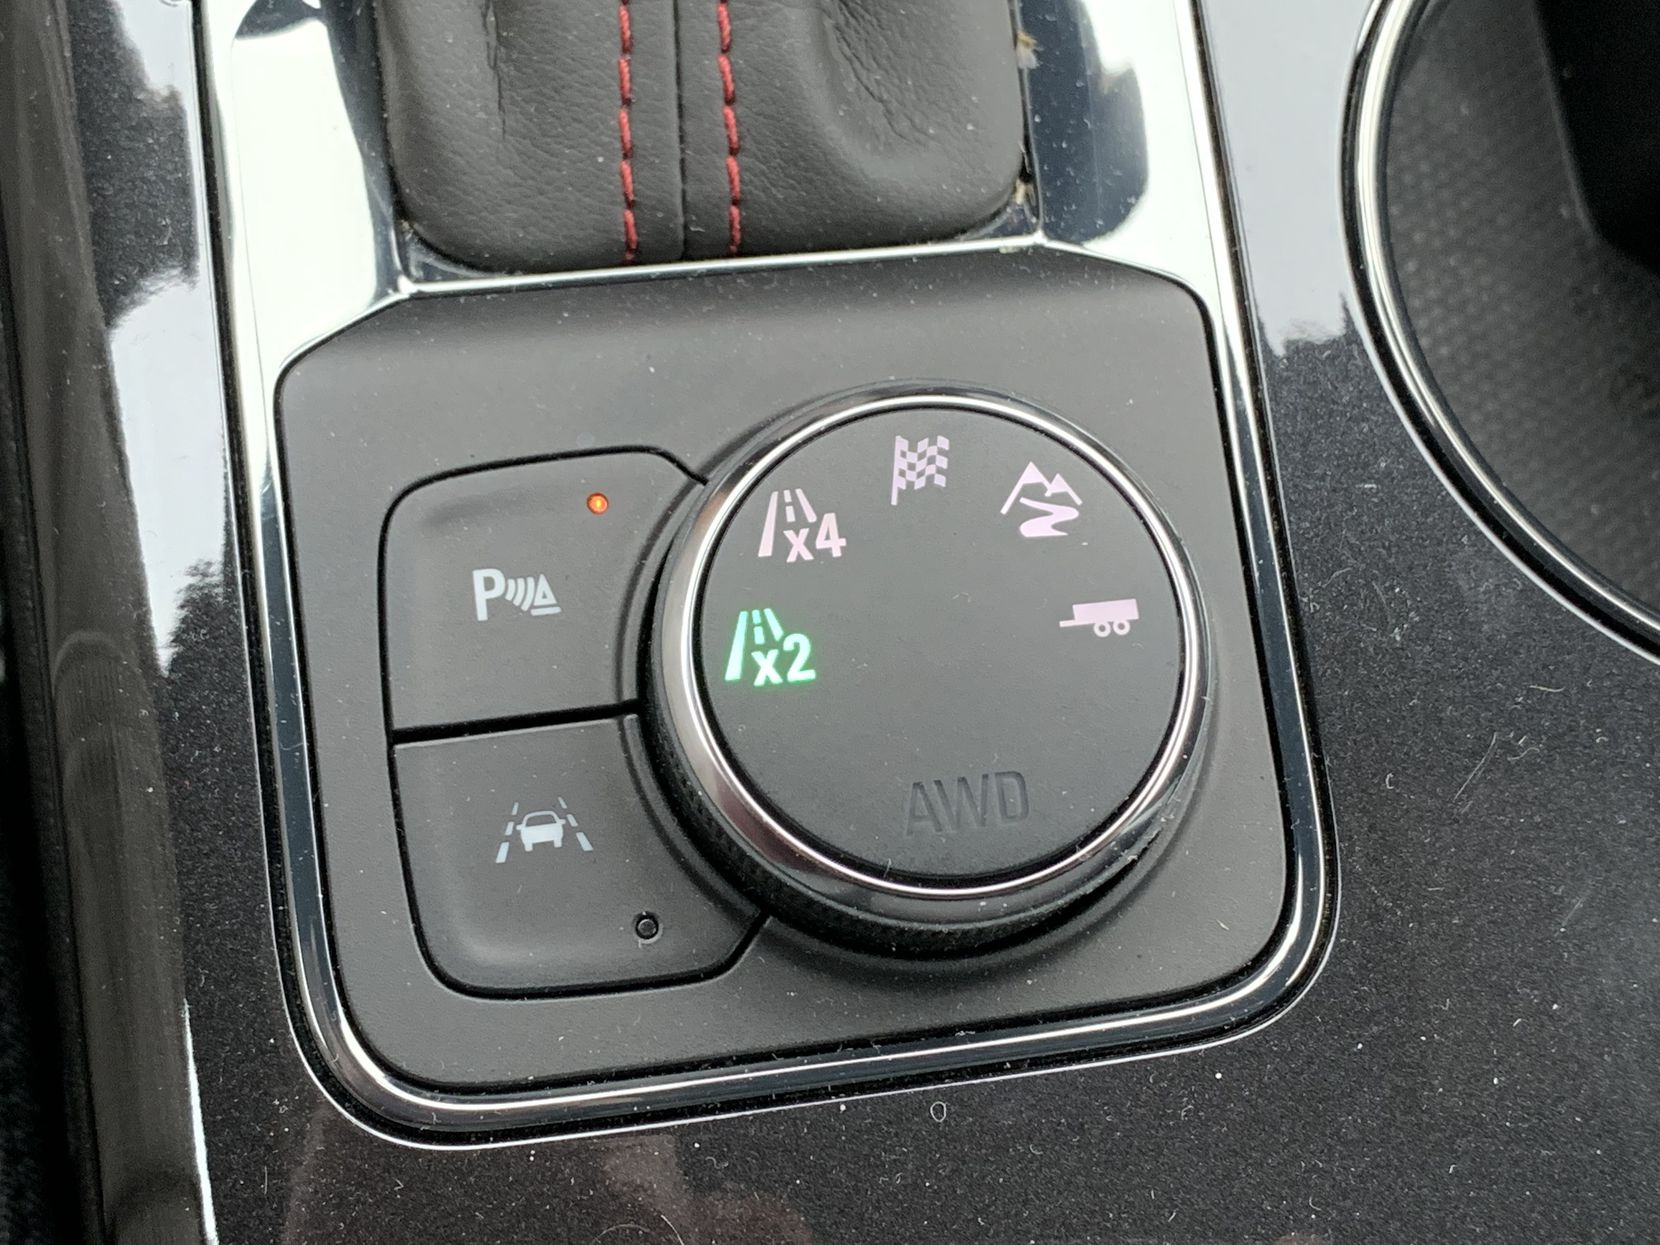 The driving mode selector knob on the console.